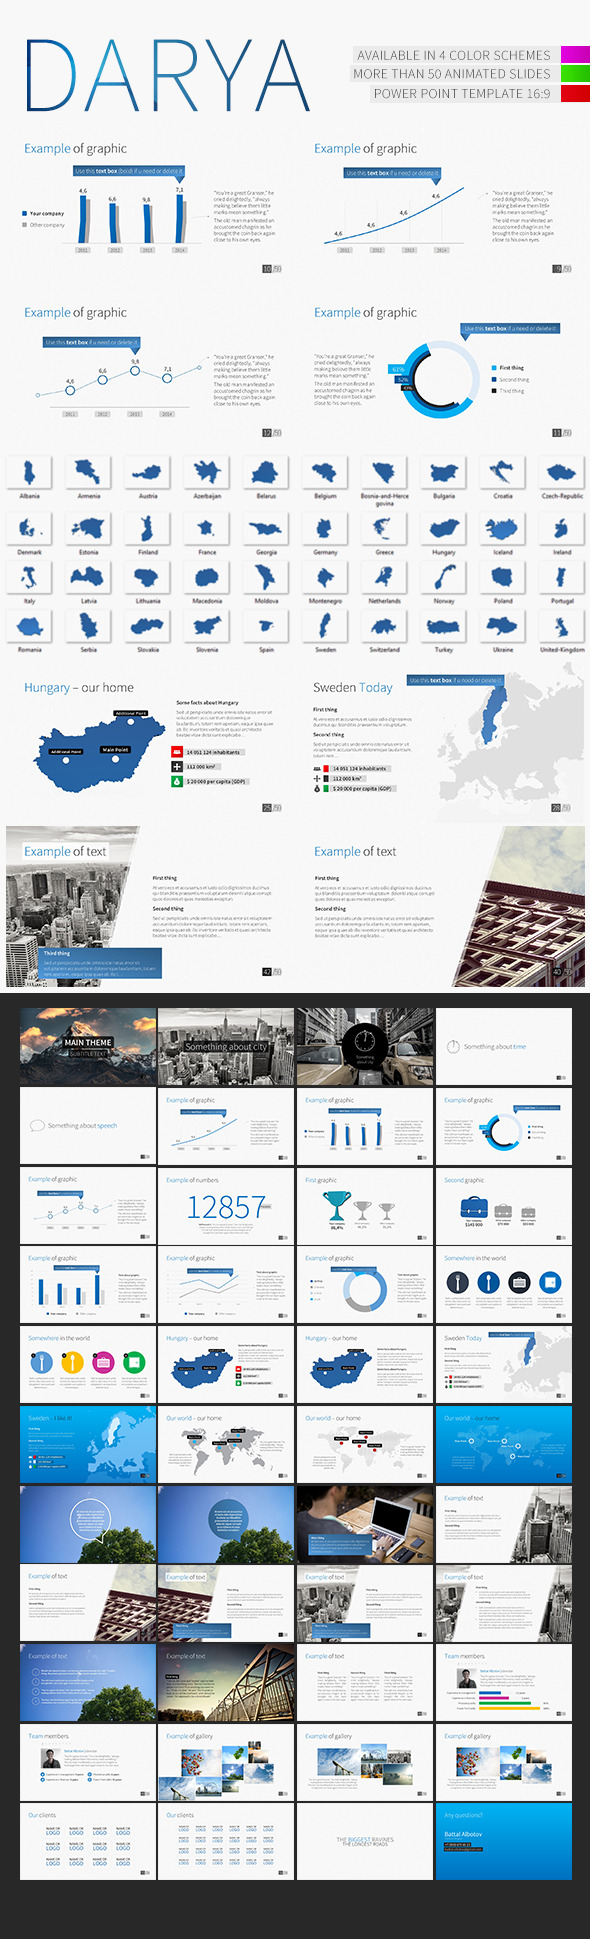 GraphicRiver Darya PowerPoint Template 9170975